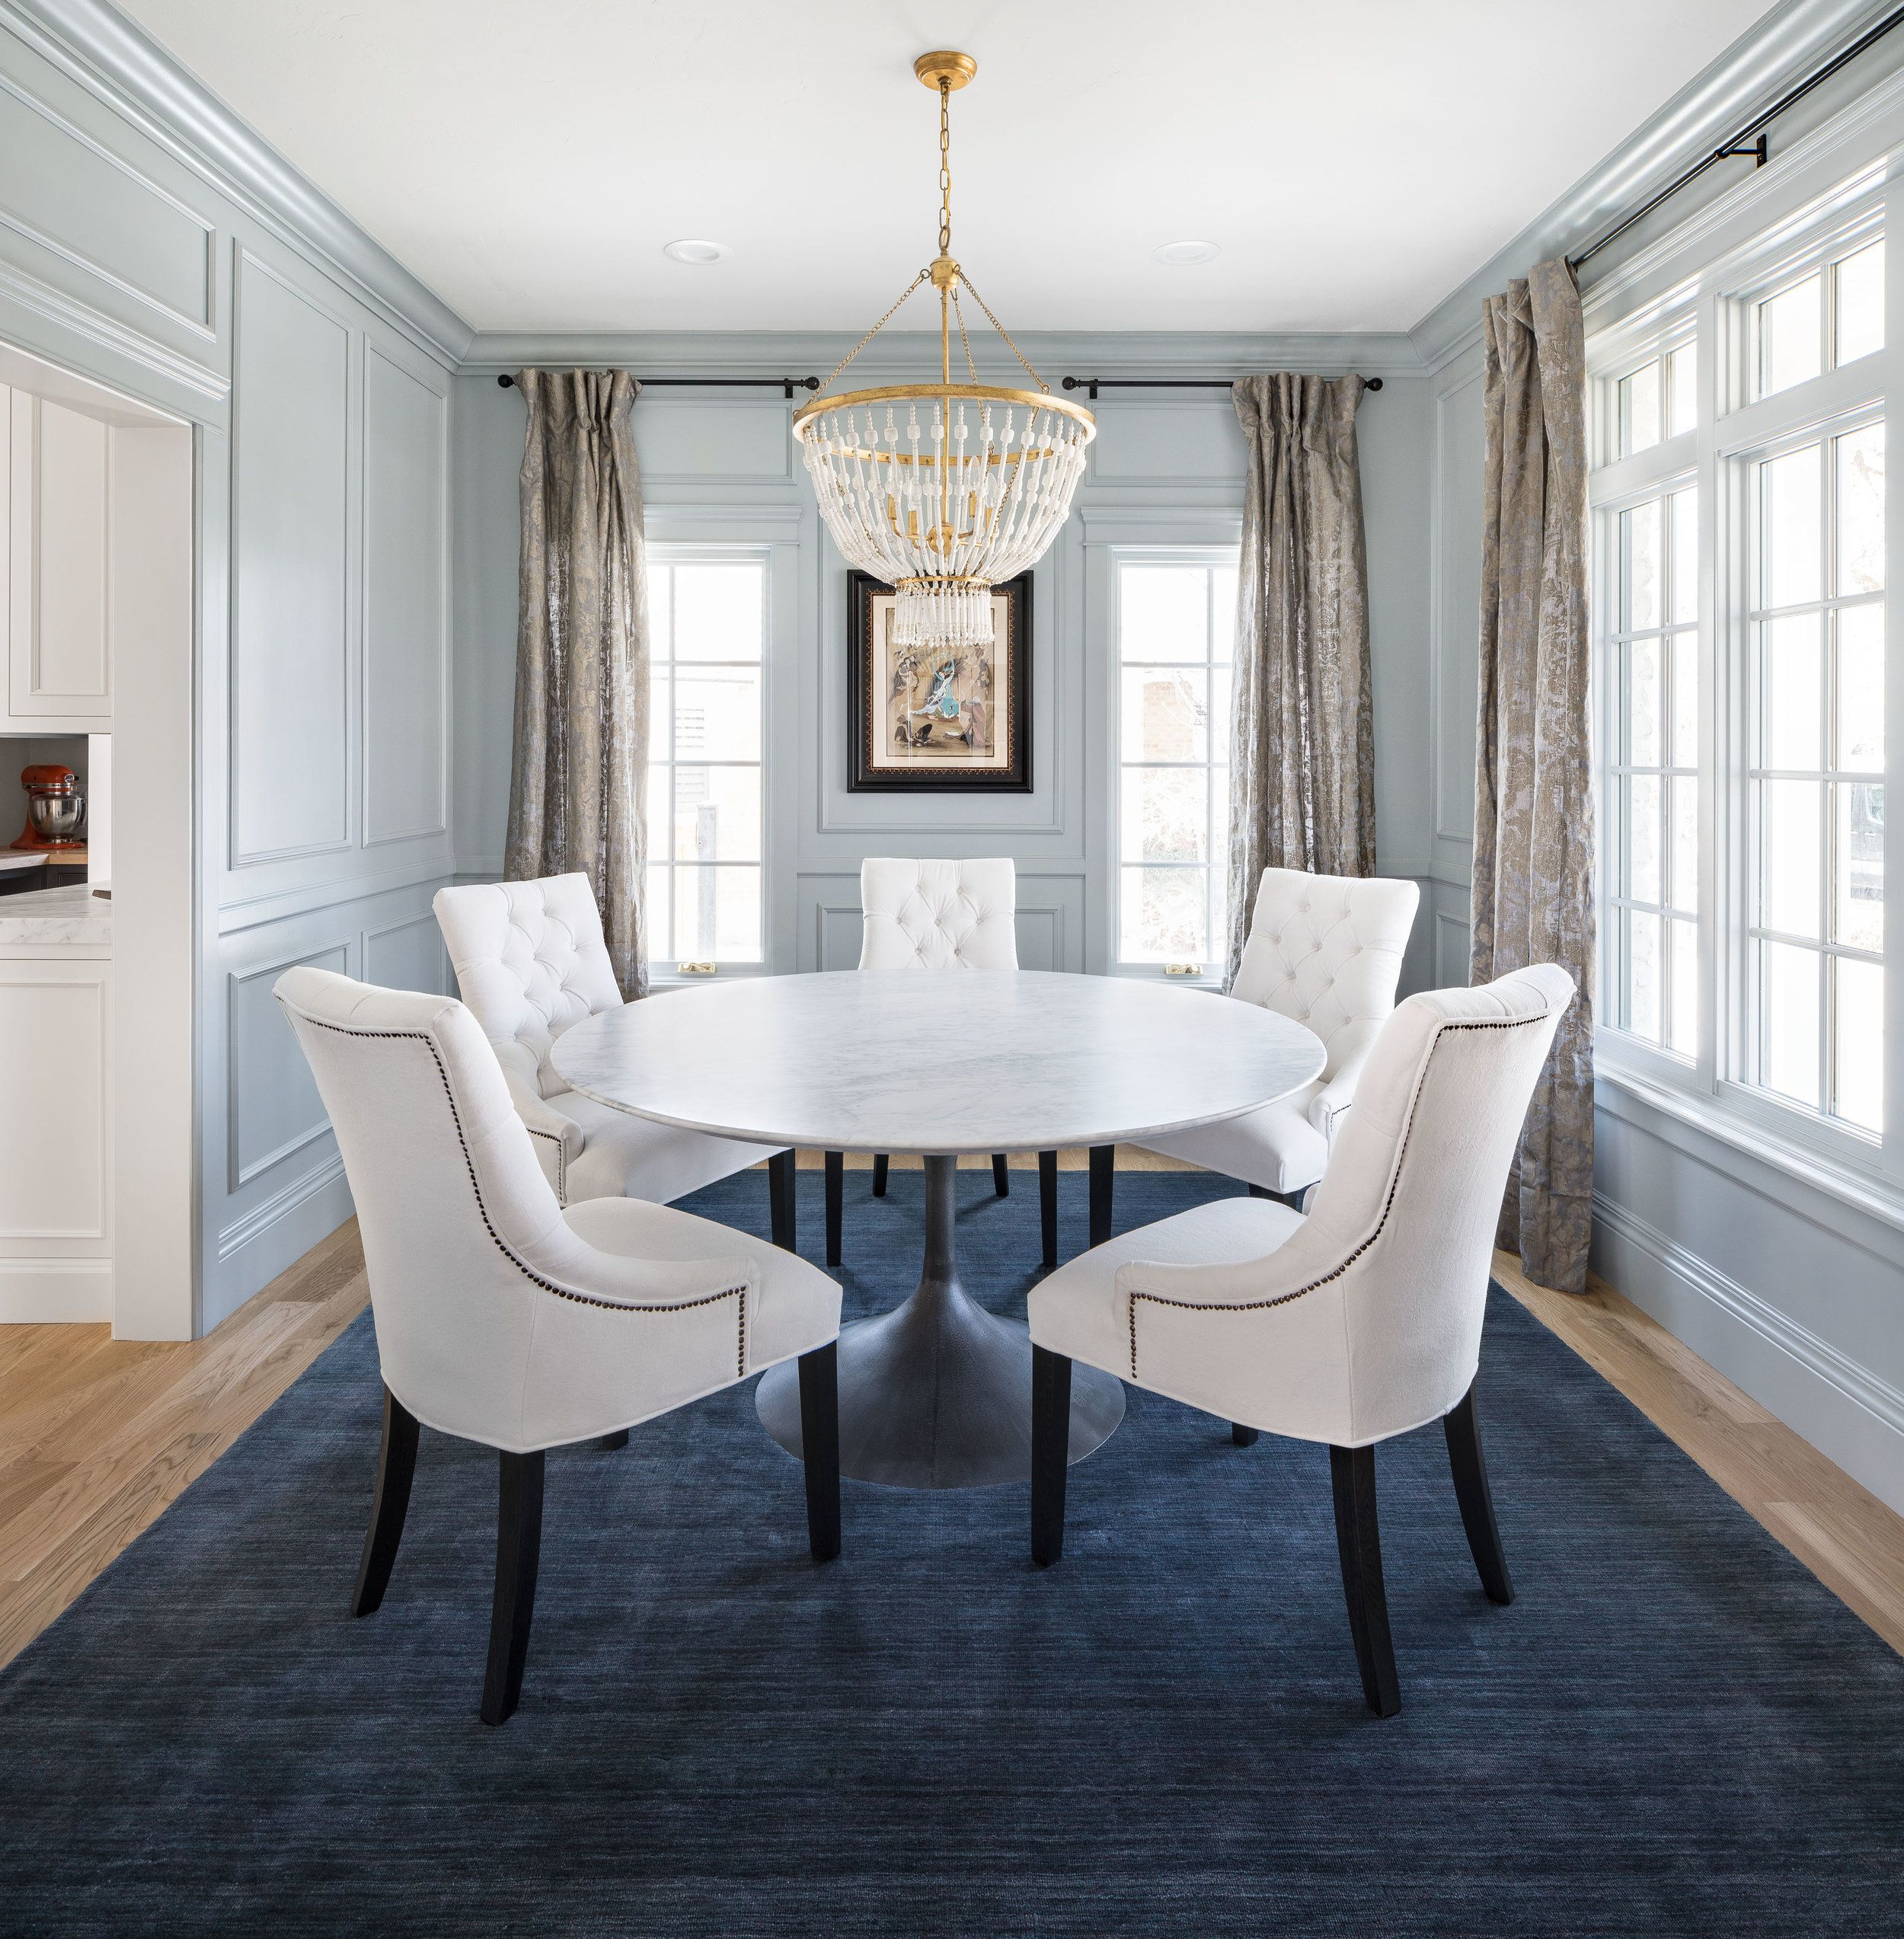 Traditional Dining Room Blue Area Rug Beaded Chandelier Round Dining Table White Upholstered Dining Room Blue Round Dining Room Table Round Dining Room